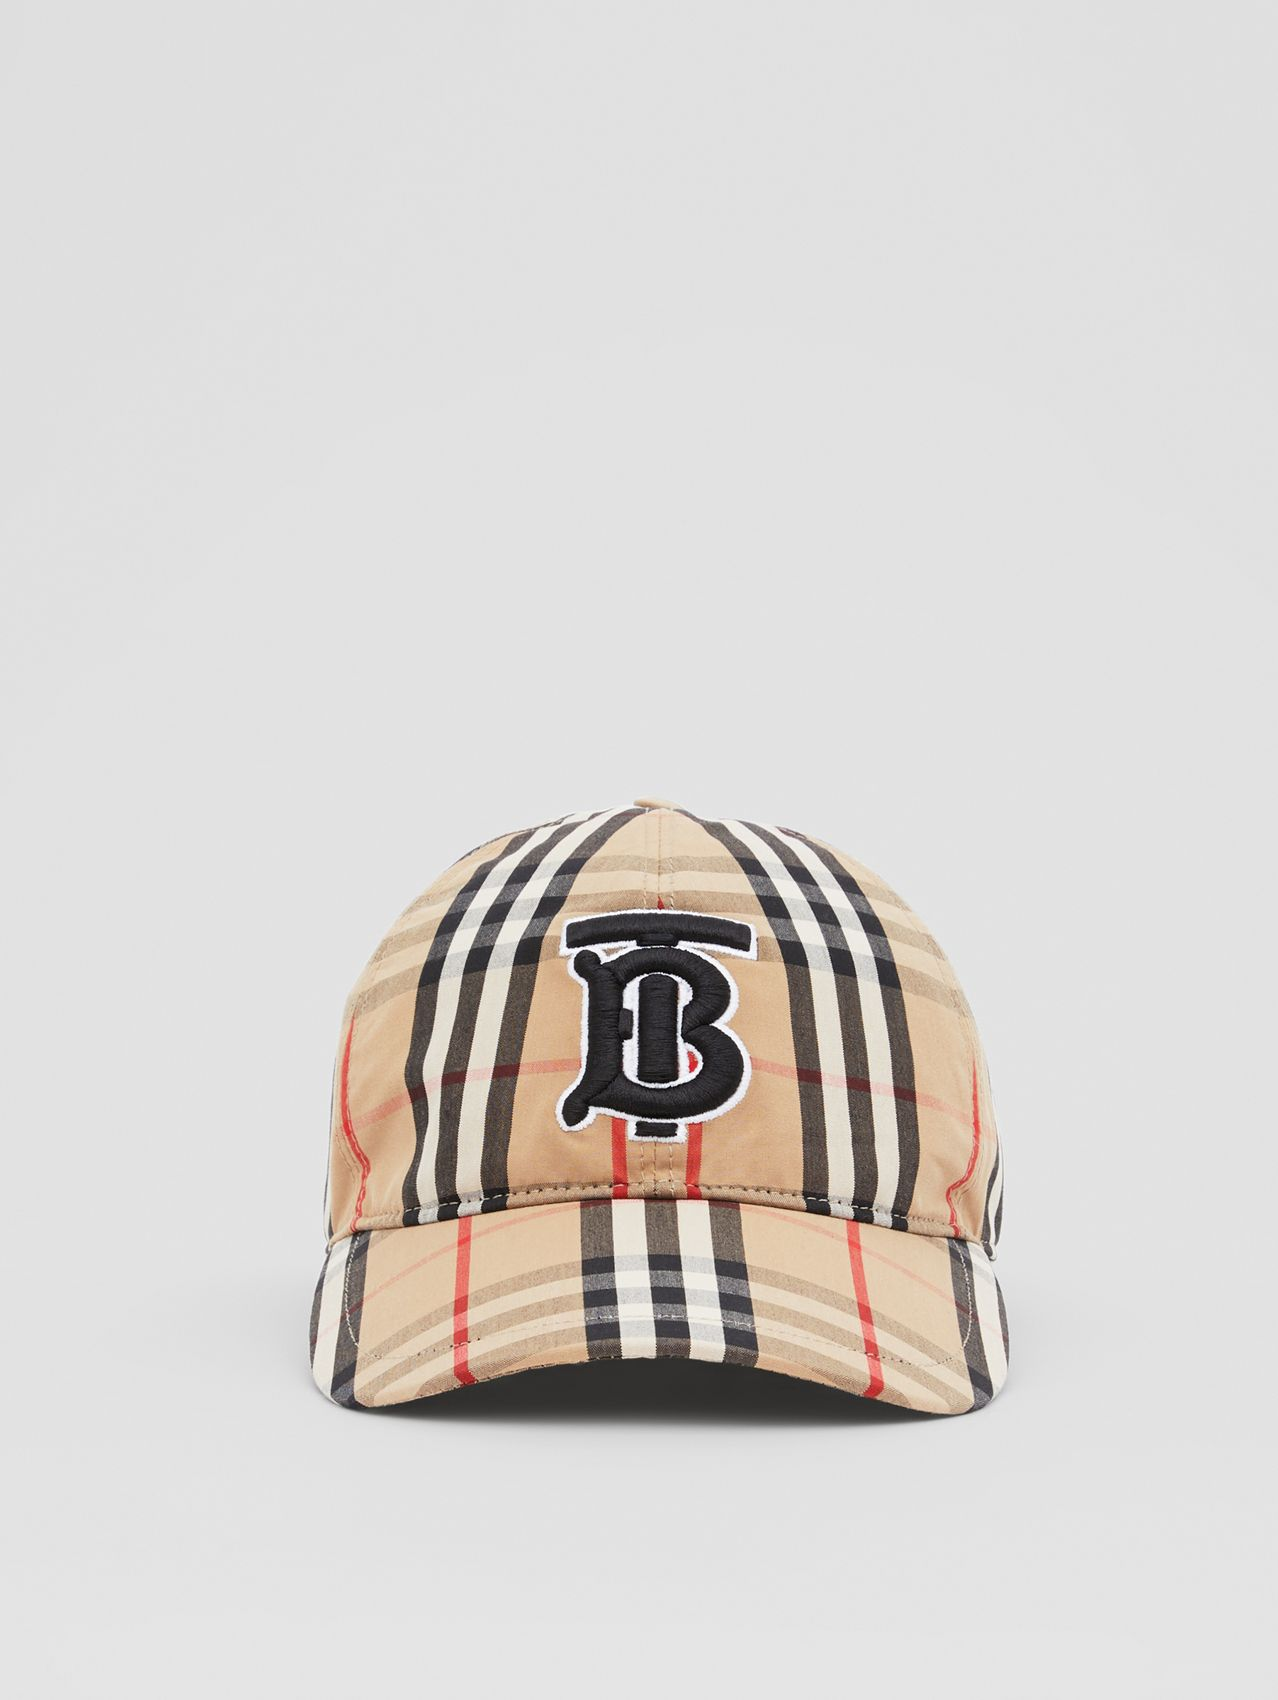 Monogram Motif Vintage Check Cotton Baseball Cap in Archive Beige